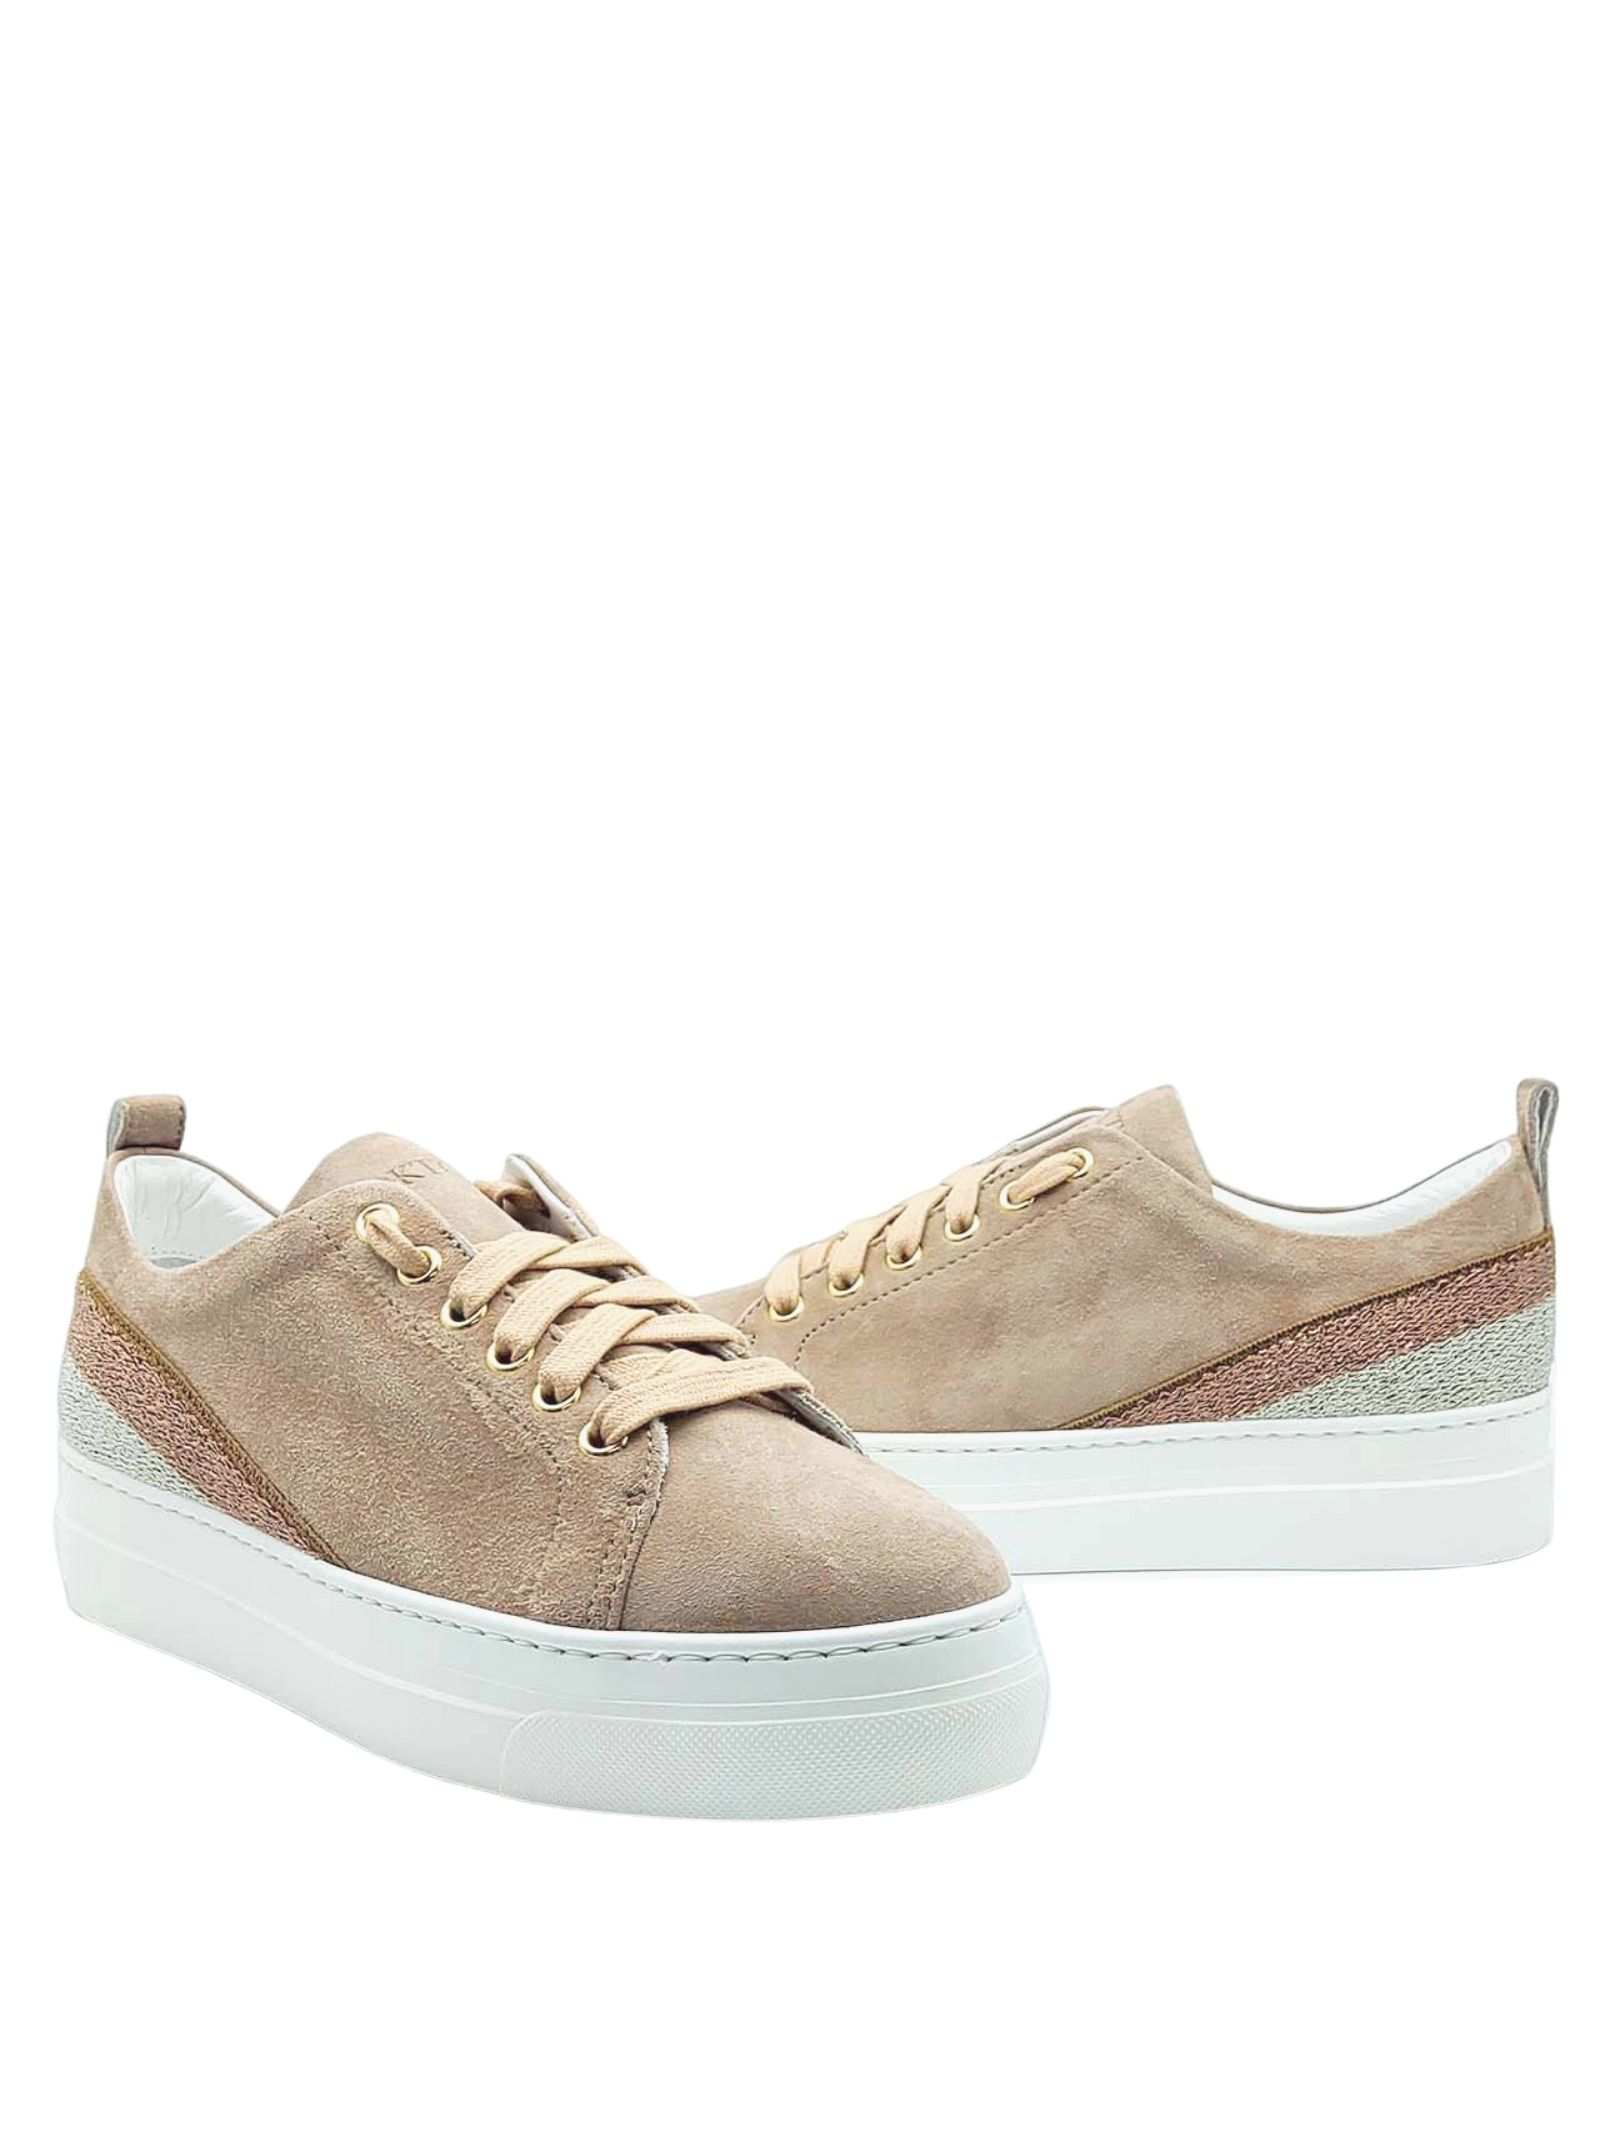 Women's Shoes Sneakers in Nude Suede with Laminated Band on the Heel and Rubber Wedge Bottom Stokton | Sneakers | 950-D300